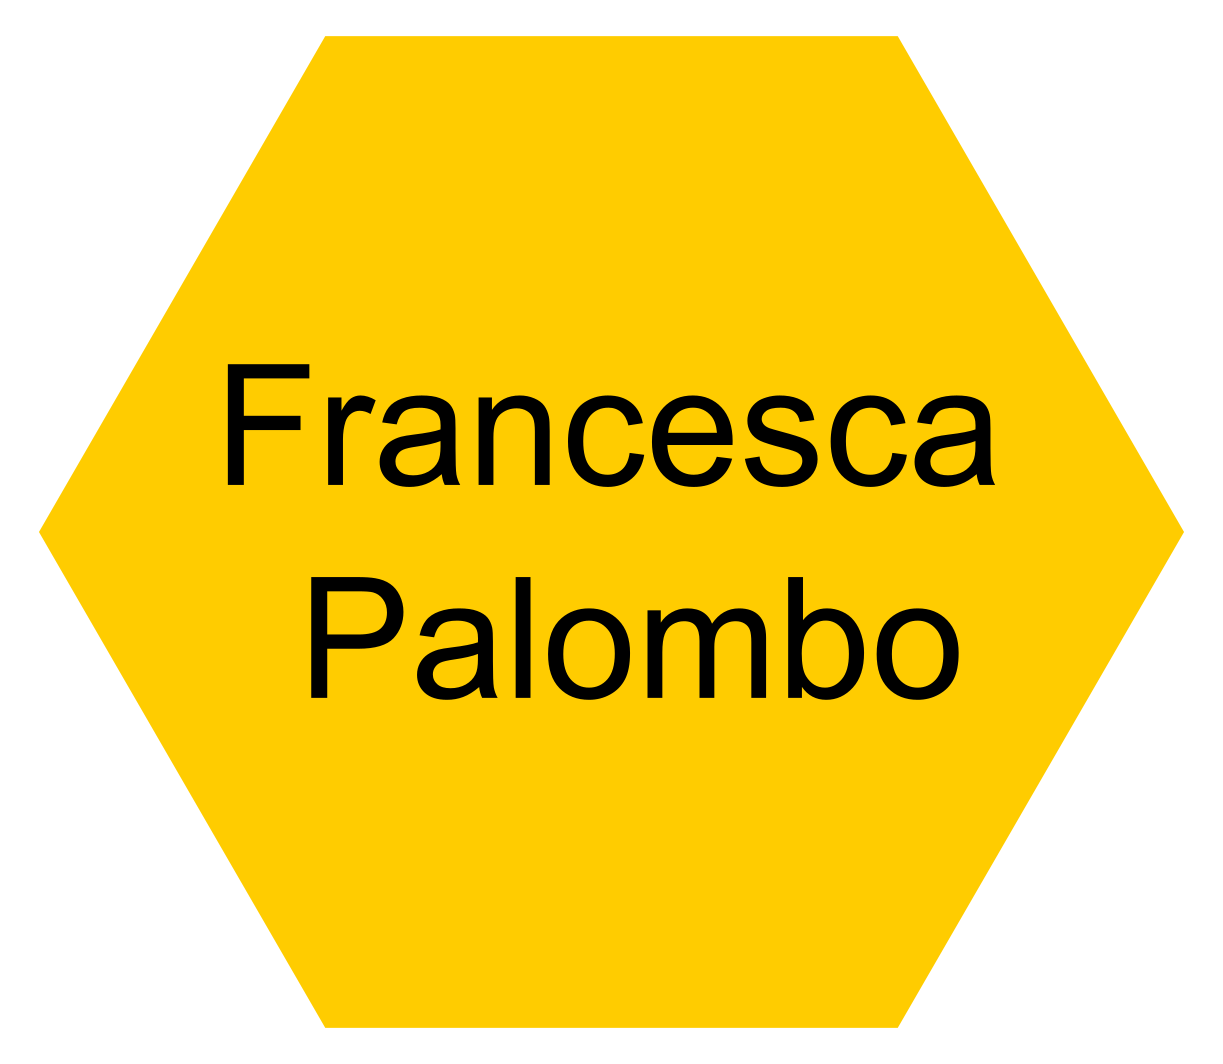 Prof. Francesca Palombo (University of Exeter: Principal Investigator) - Click this icon to reveal their contact details.